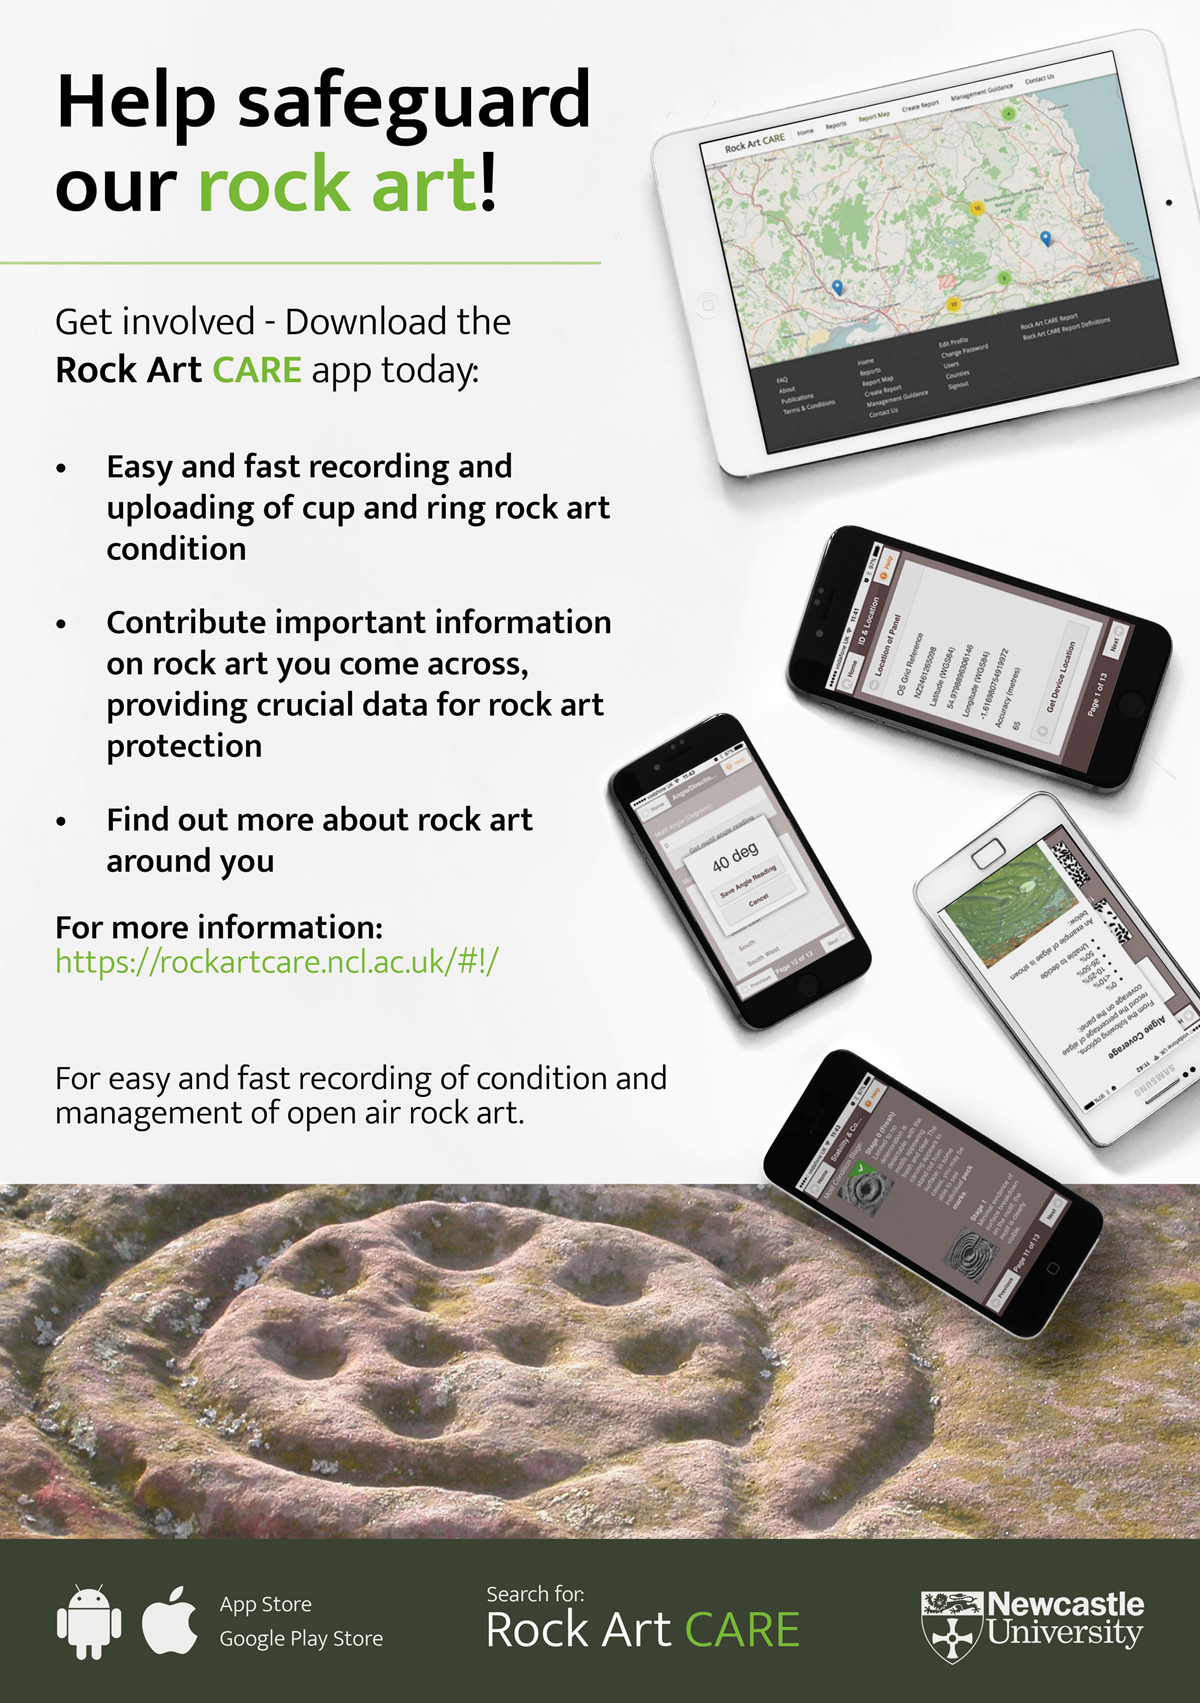 Rock Art Safeguarding: using a mobile app to get the job done